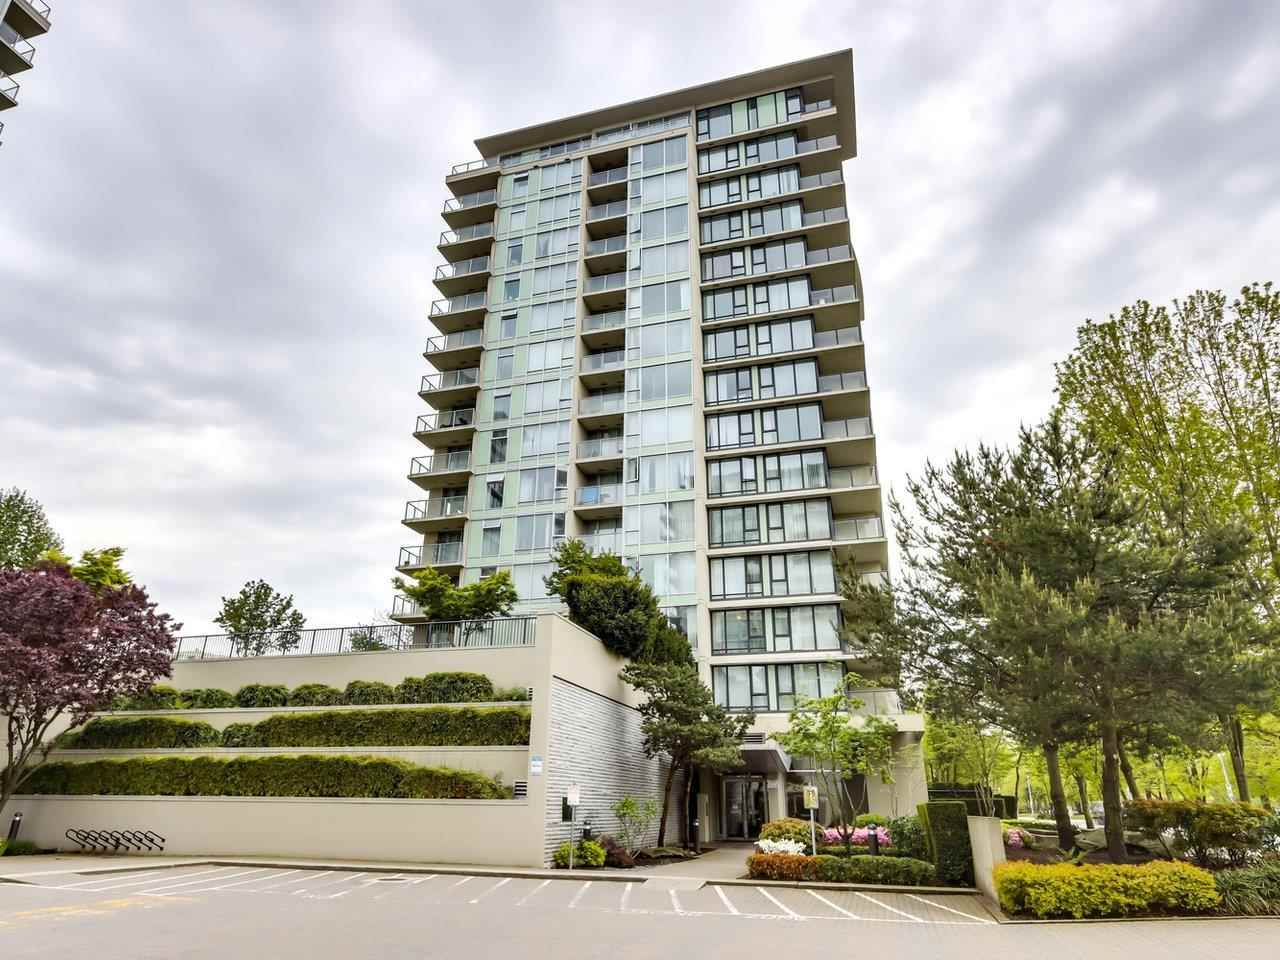 803 5088 KWANTLEN STREET - Brighouse Apartment/Condo for sale, 2 Bedrooms (R2579545)